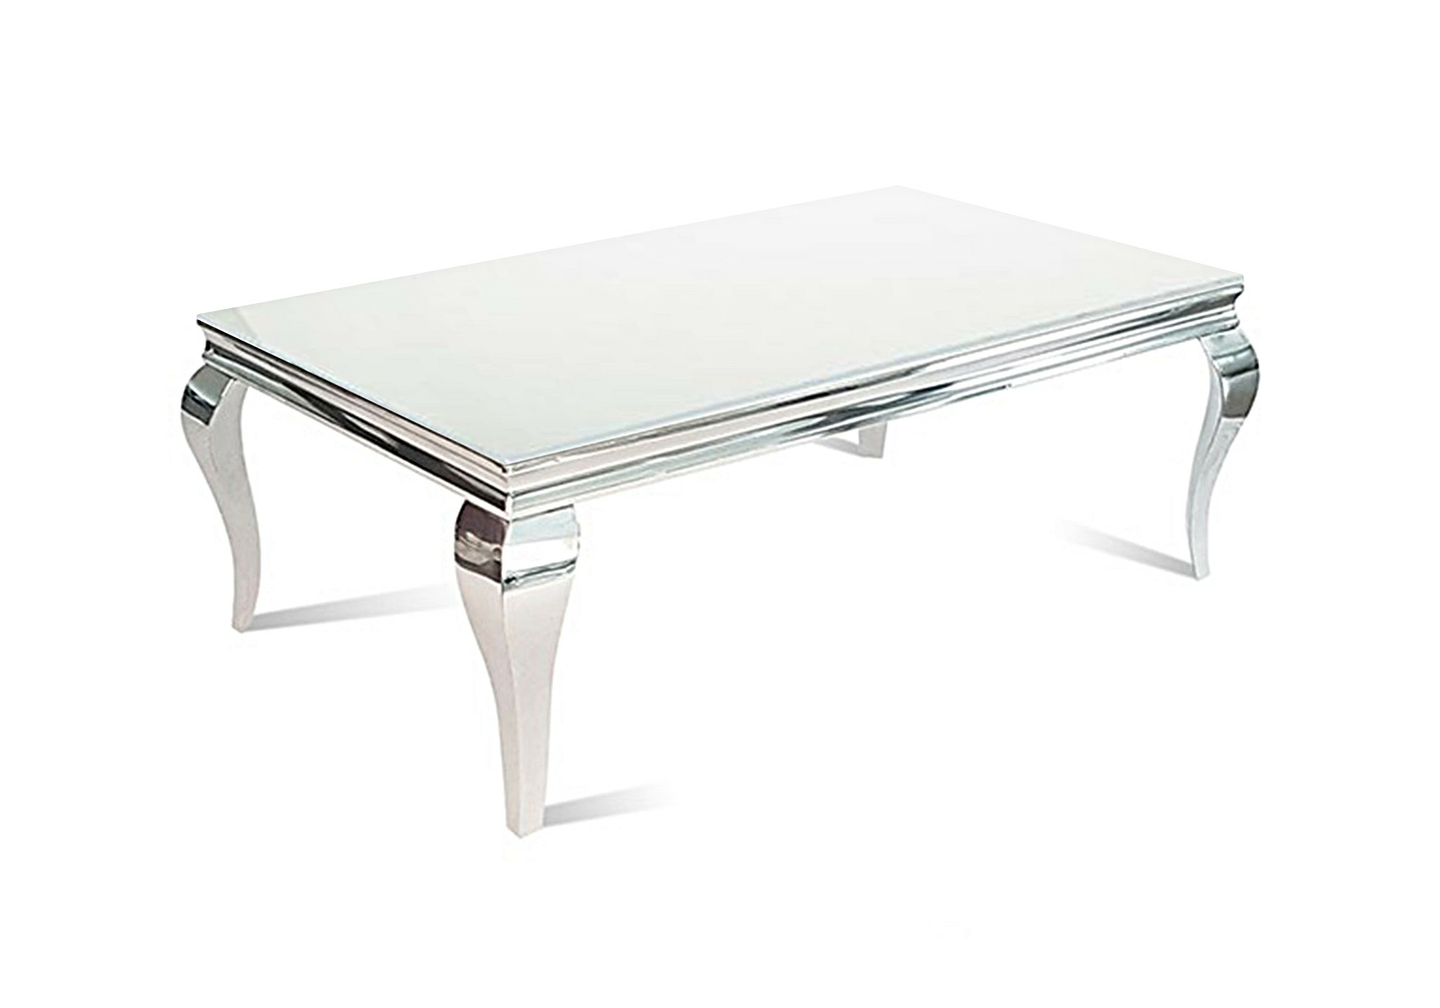 Table basse chromé verre blanc NEO-1